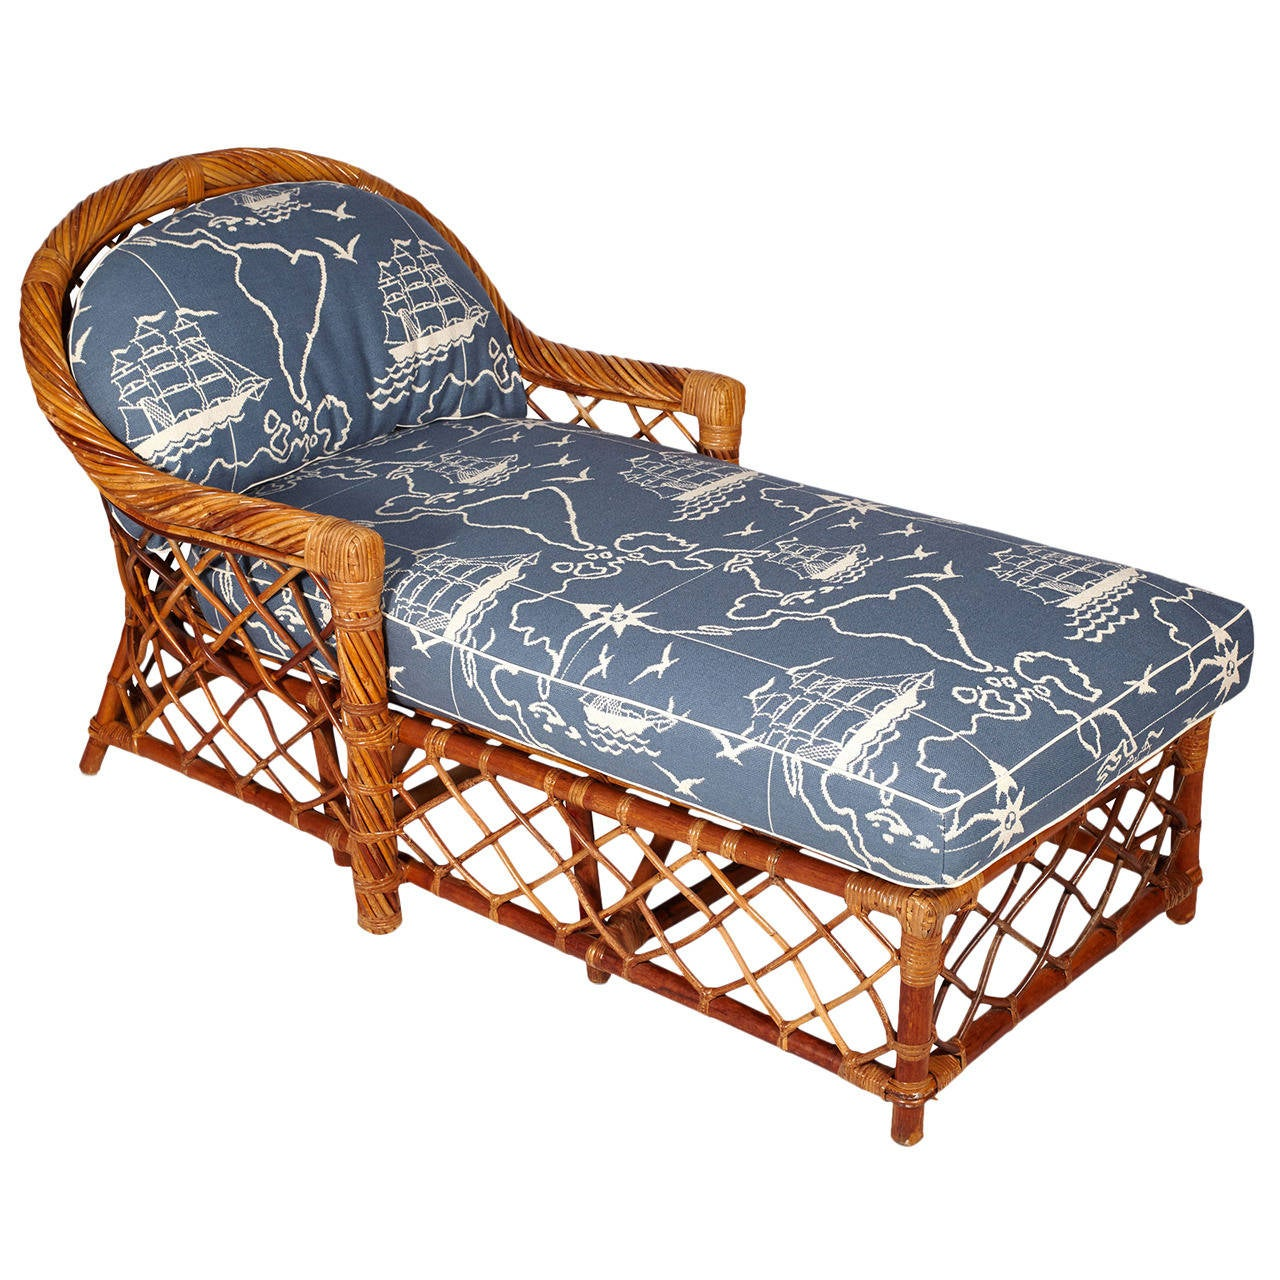 Bielecky bros rattan chaise lounge at 1stdibs for Bamboo chaise lounge